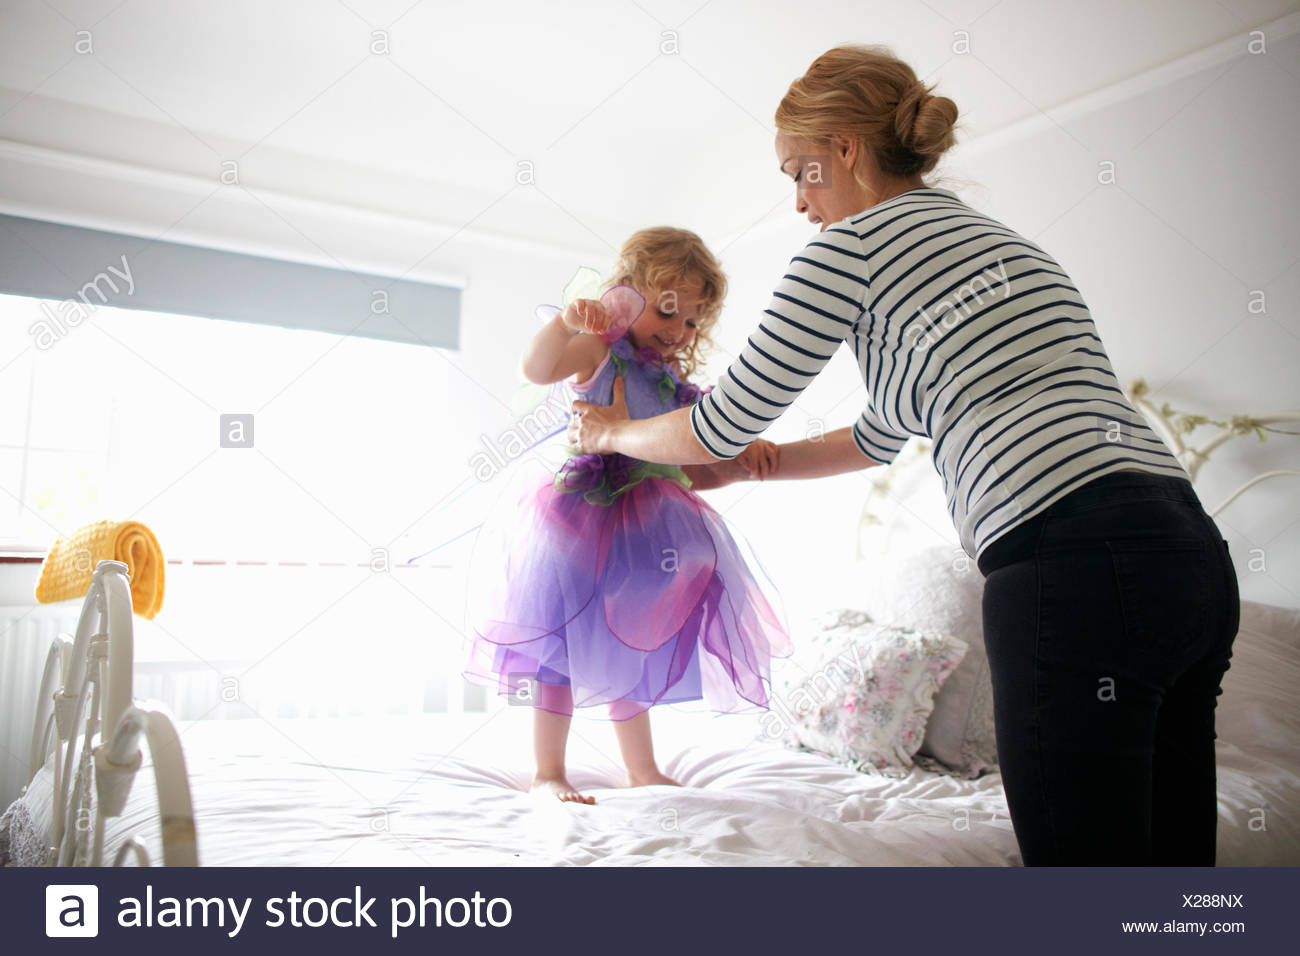 Young girl dressed in fairy costume, standing on bed, mother lifting her - Stock Image